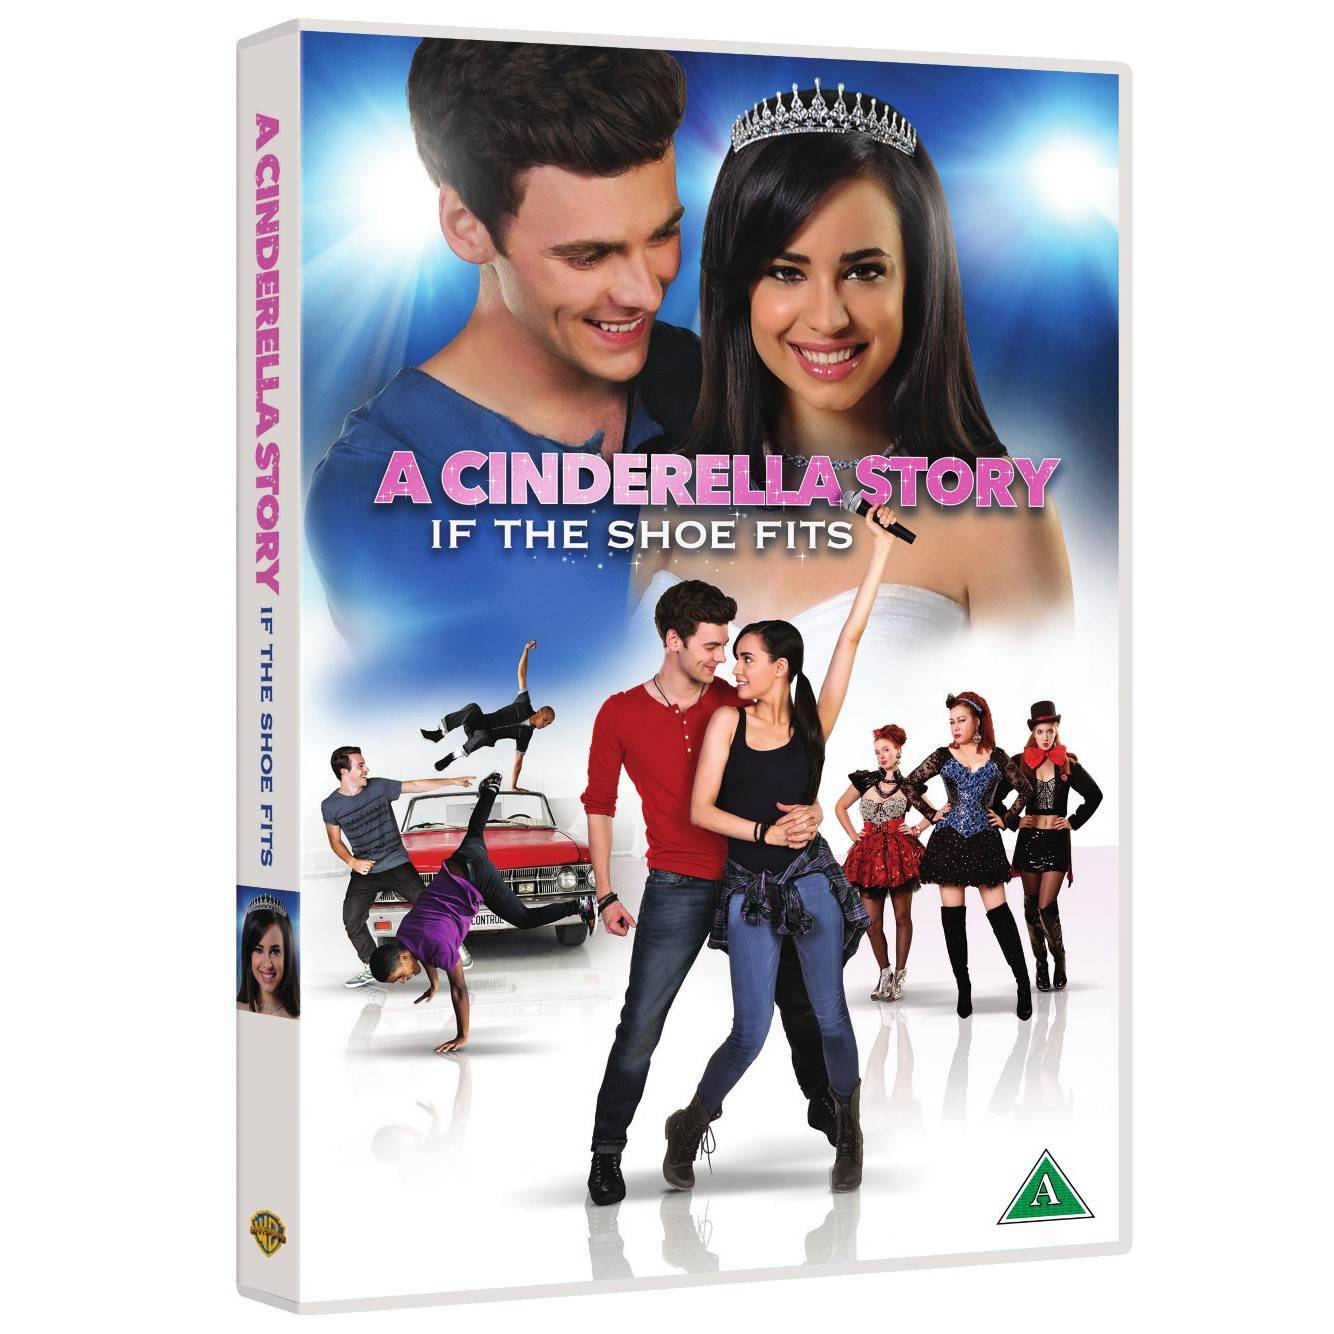 Play A Cinderella Story: If the Shoe Fits (DVD)